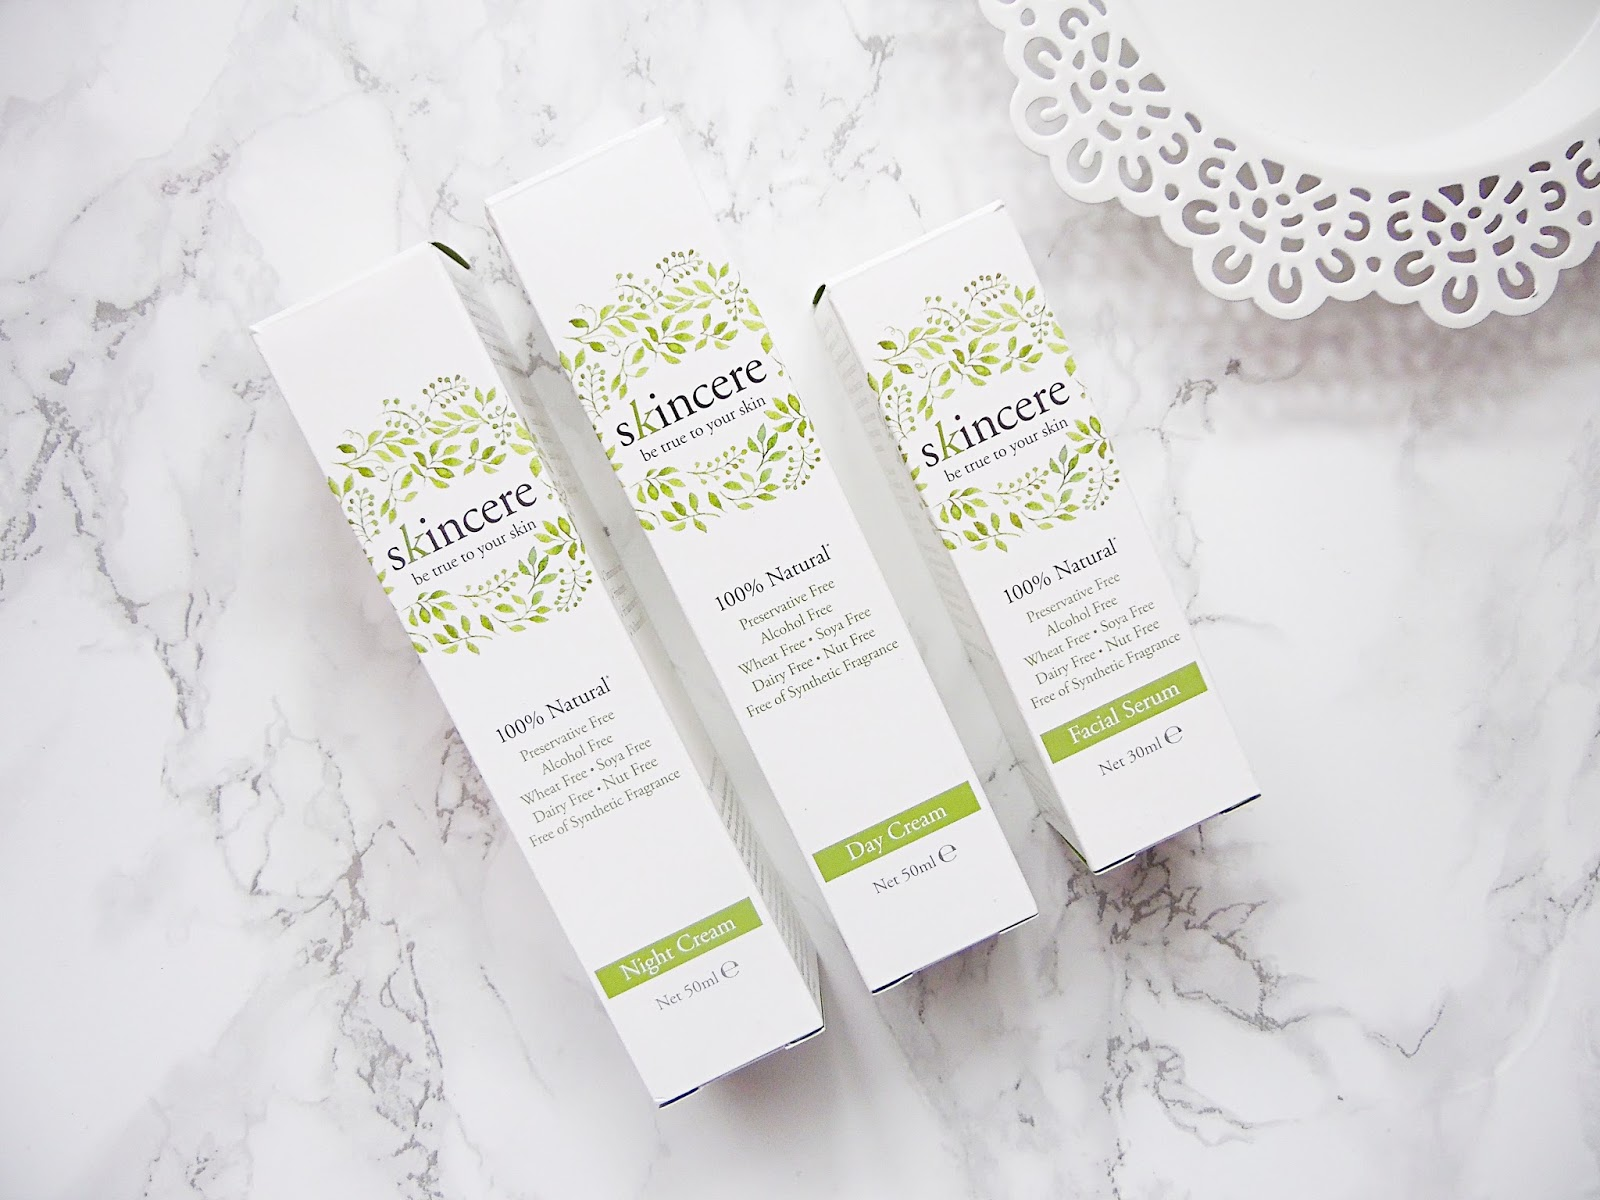 Keeping the Skin Hydrated with Skincere